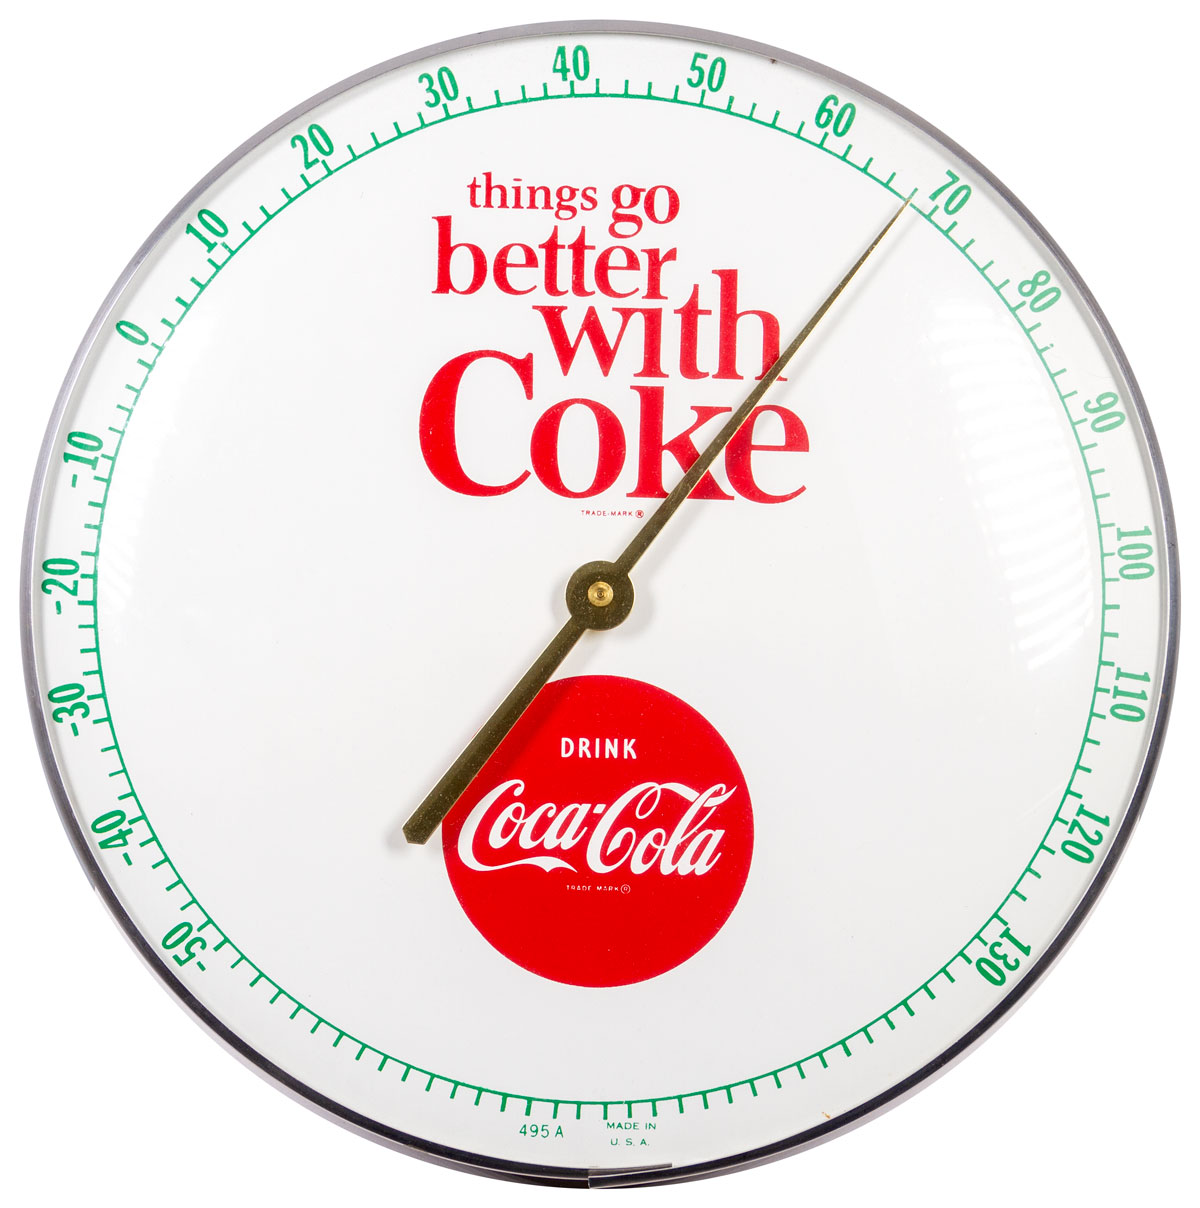 Coca-Cola 1960's Things are Better With Coke Thermometer